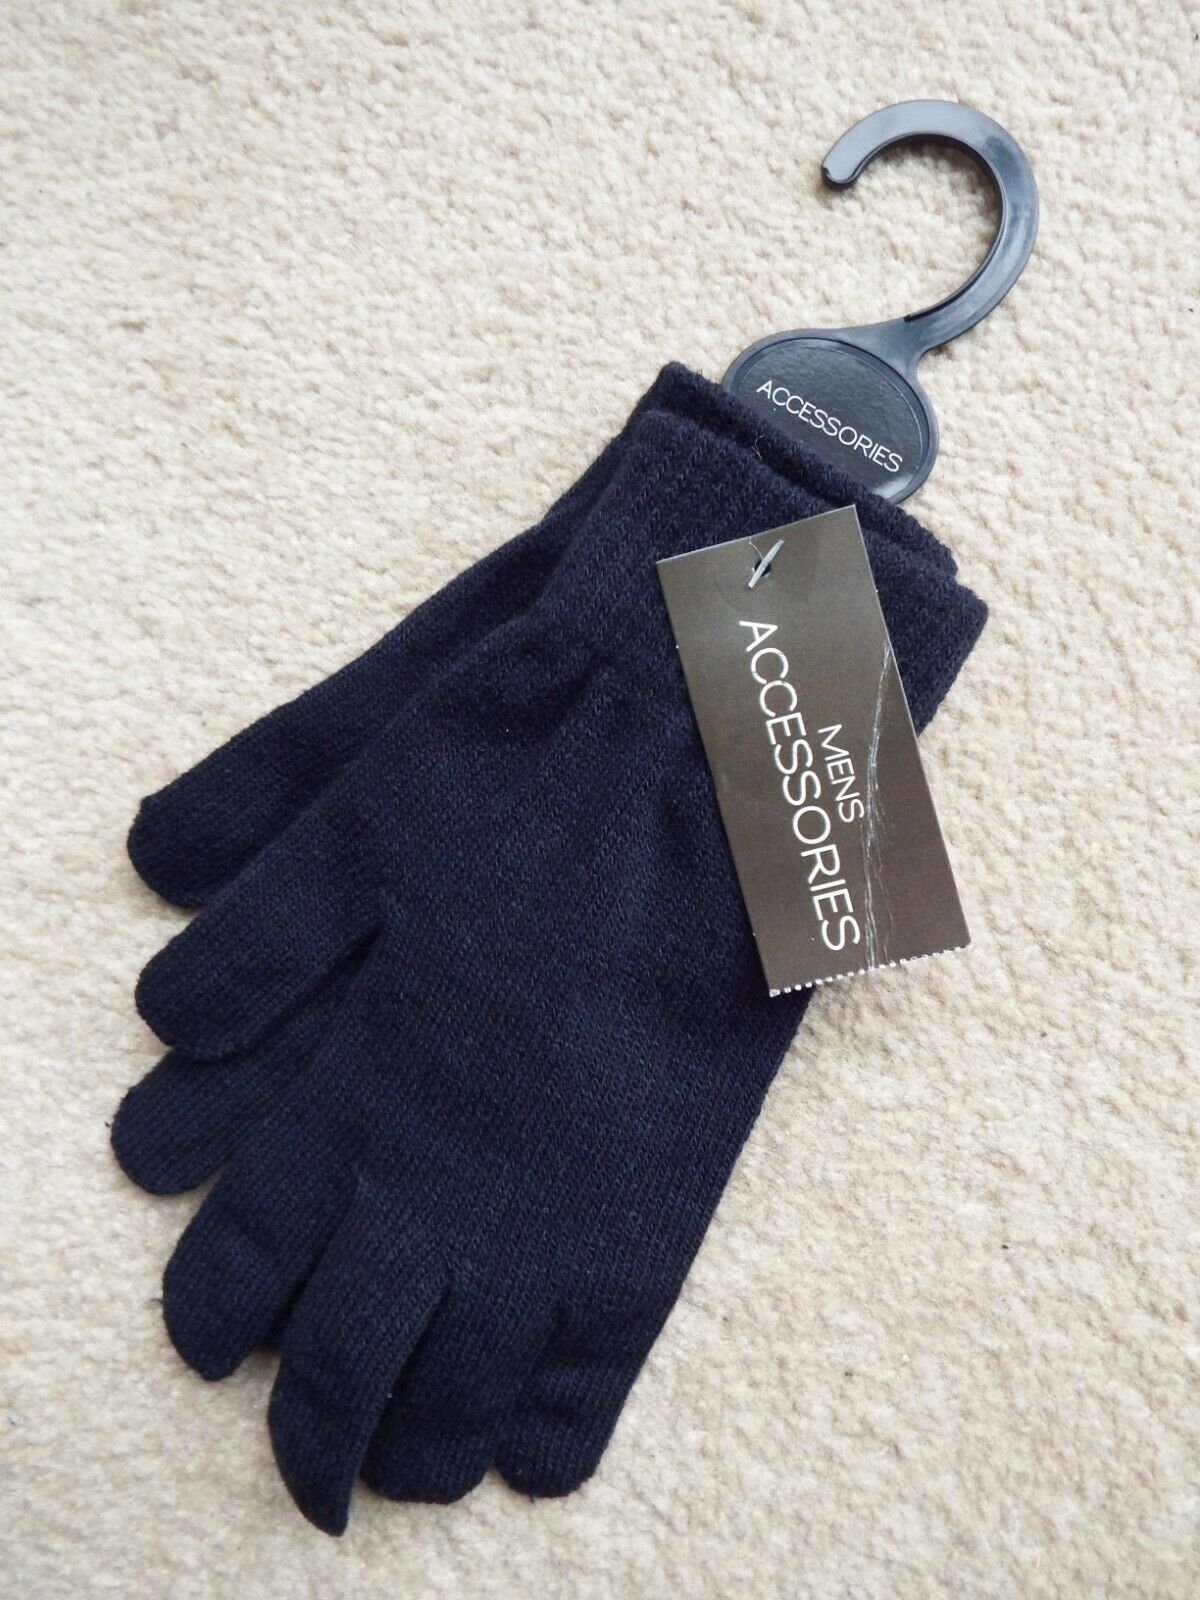 New with tags pair of men's women's unisex winter gloves dark navy blue One size